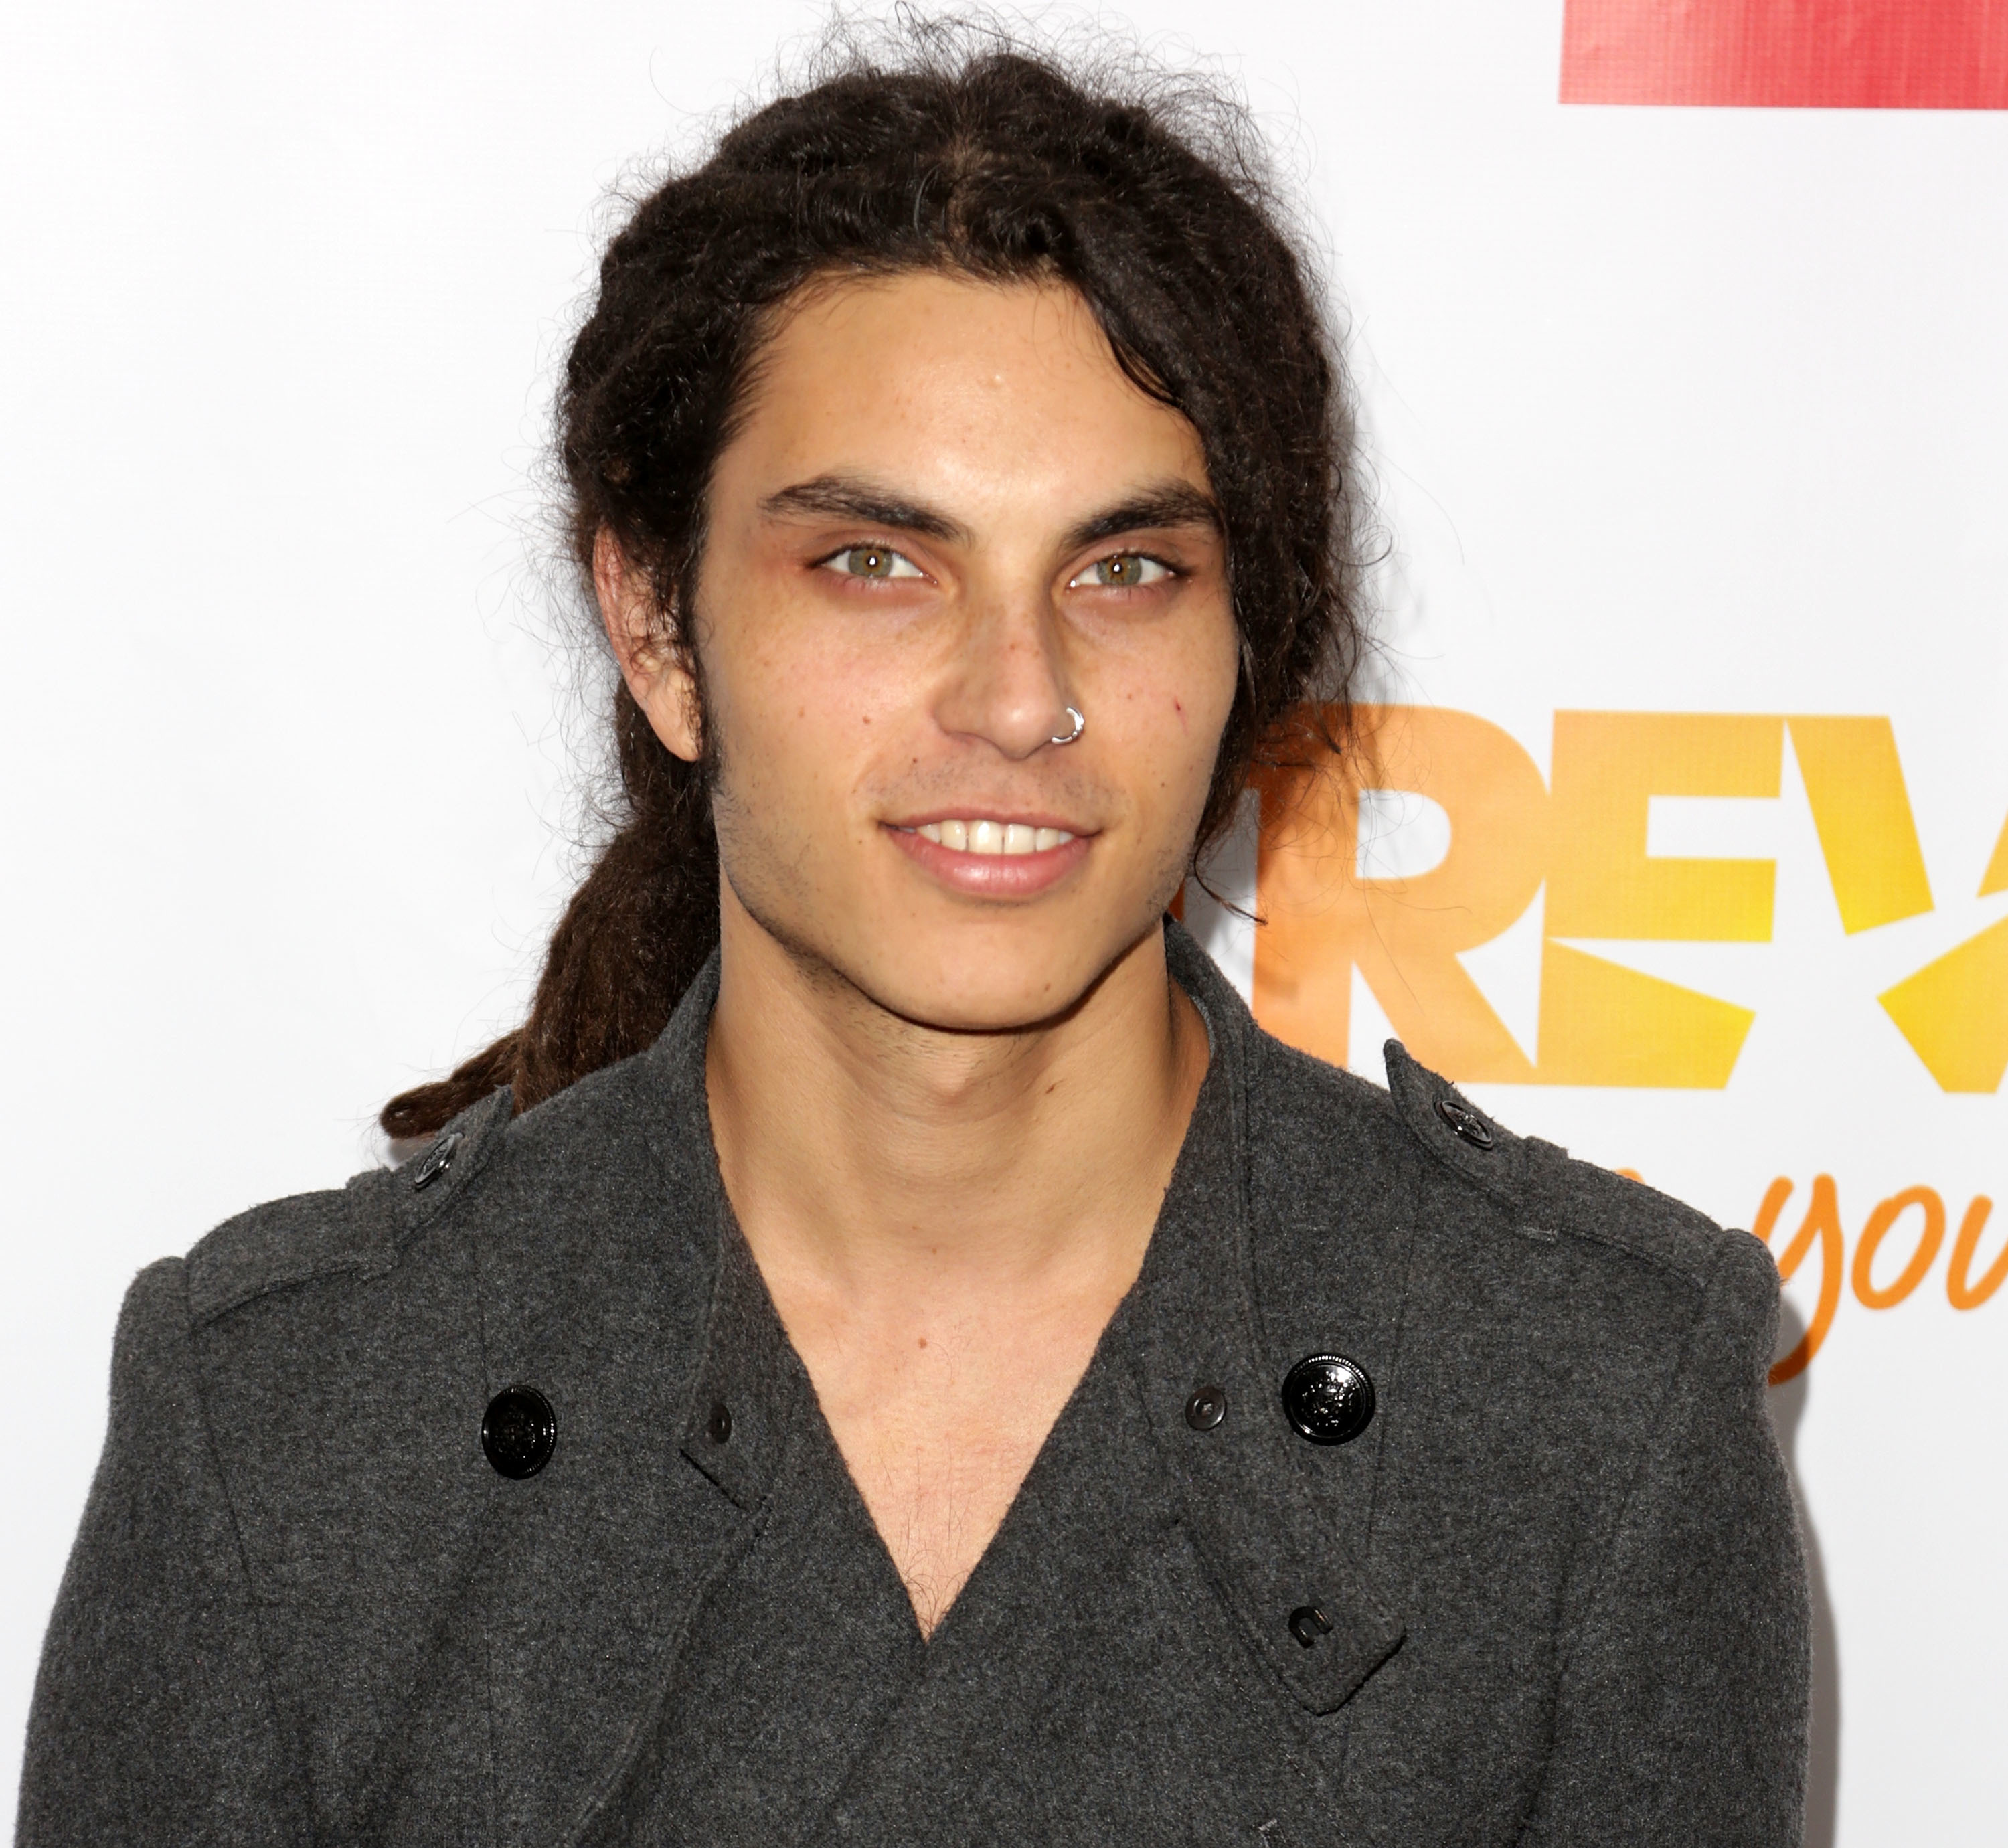 samuel larsen quotes quotesgram - photo #39